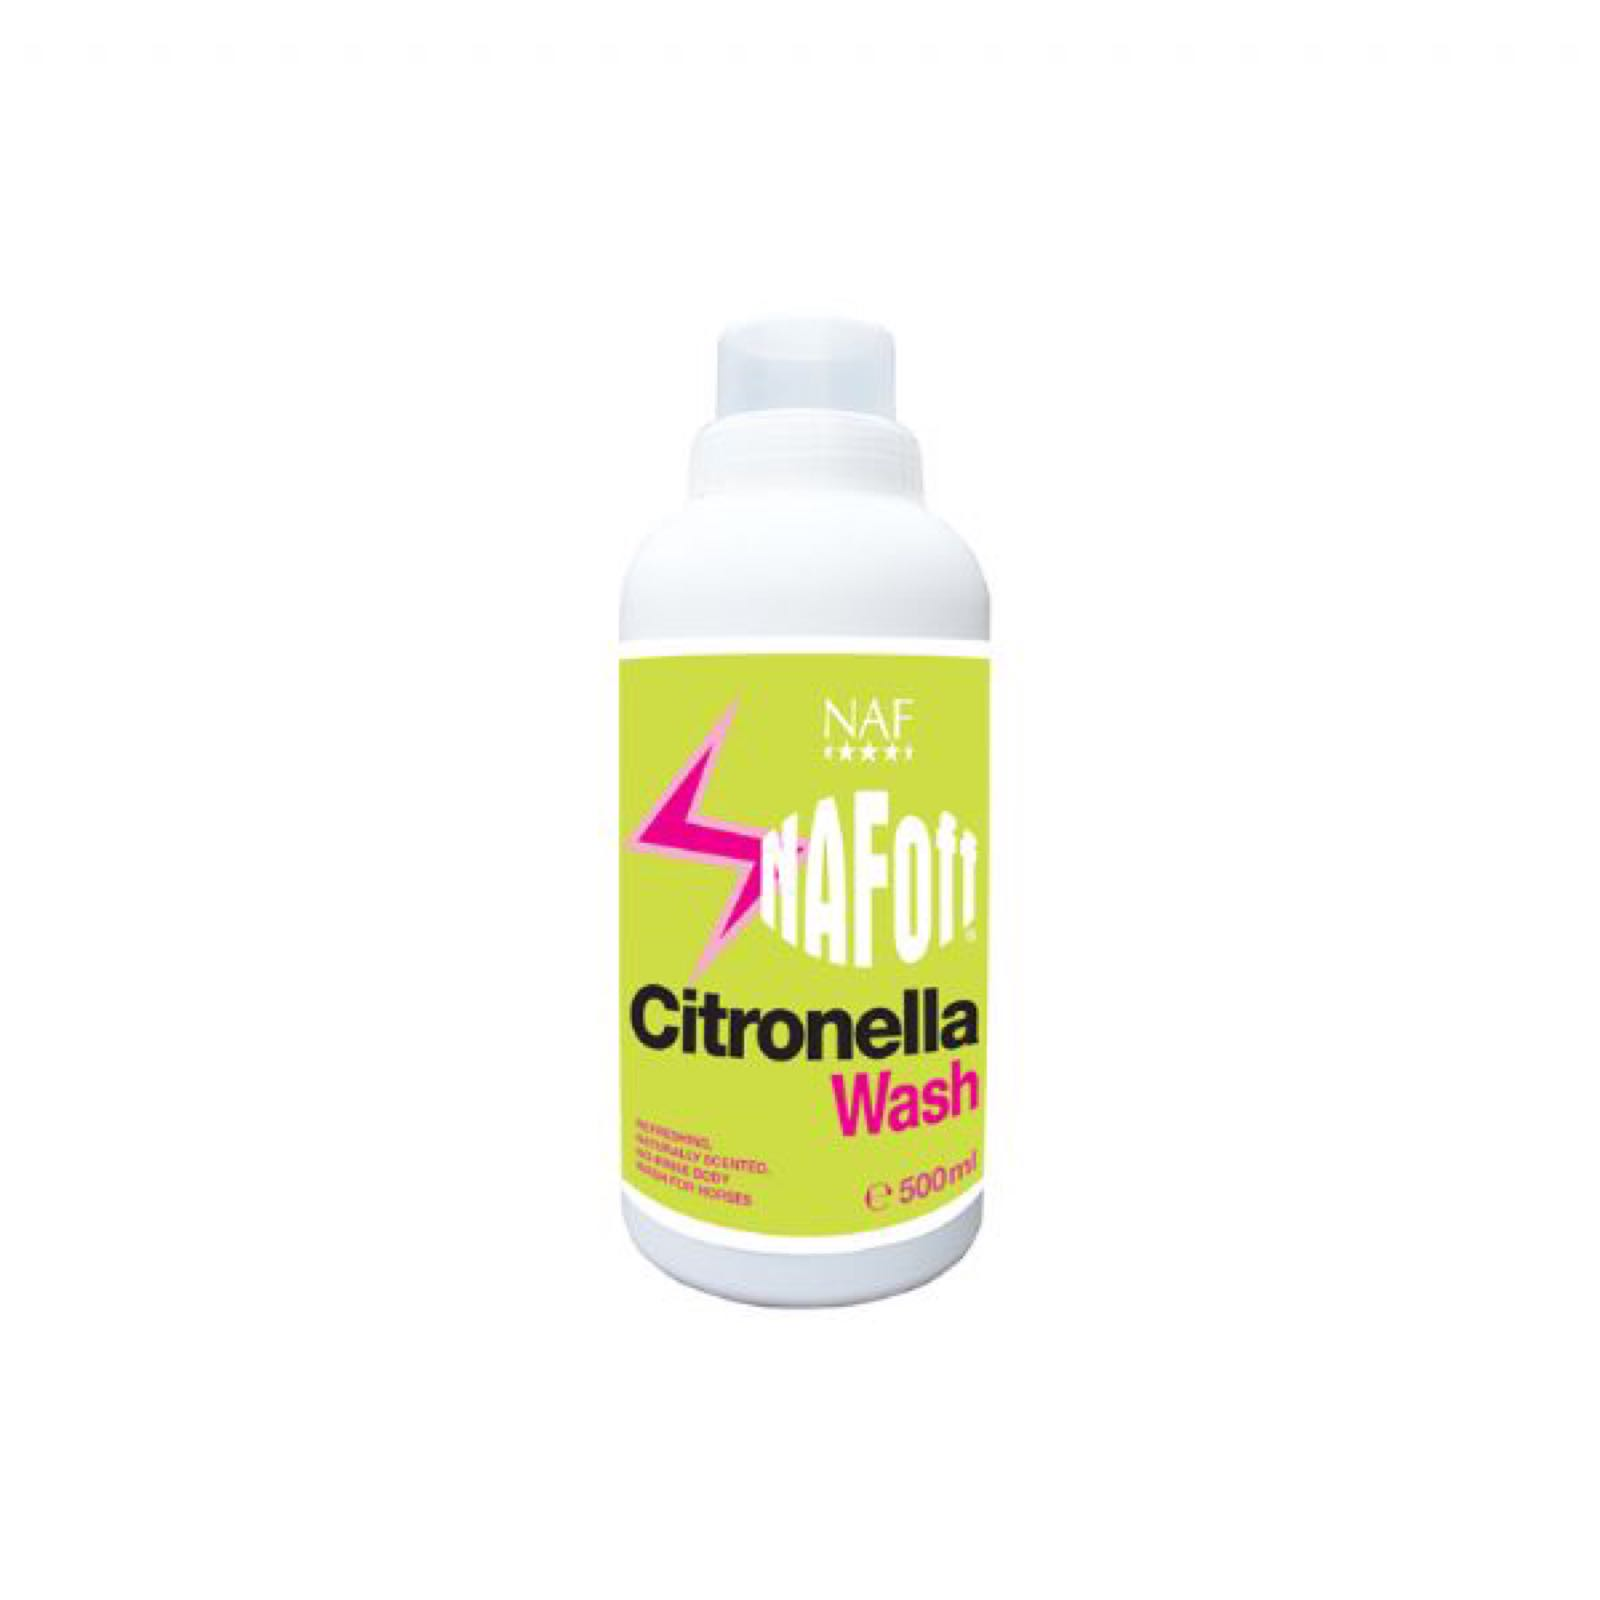 NAF Citronella Wash